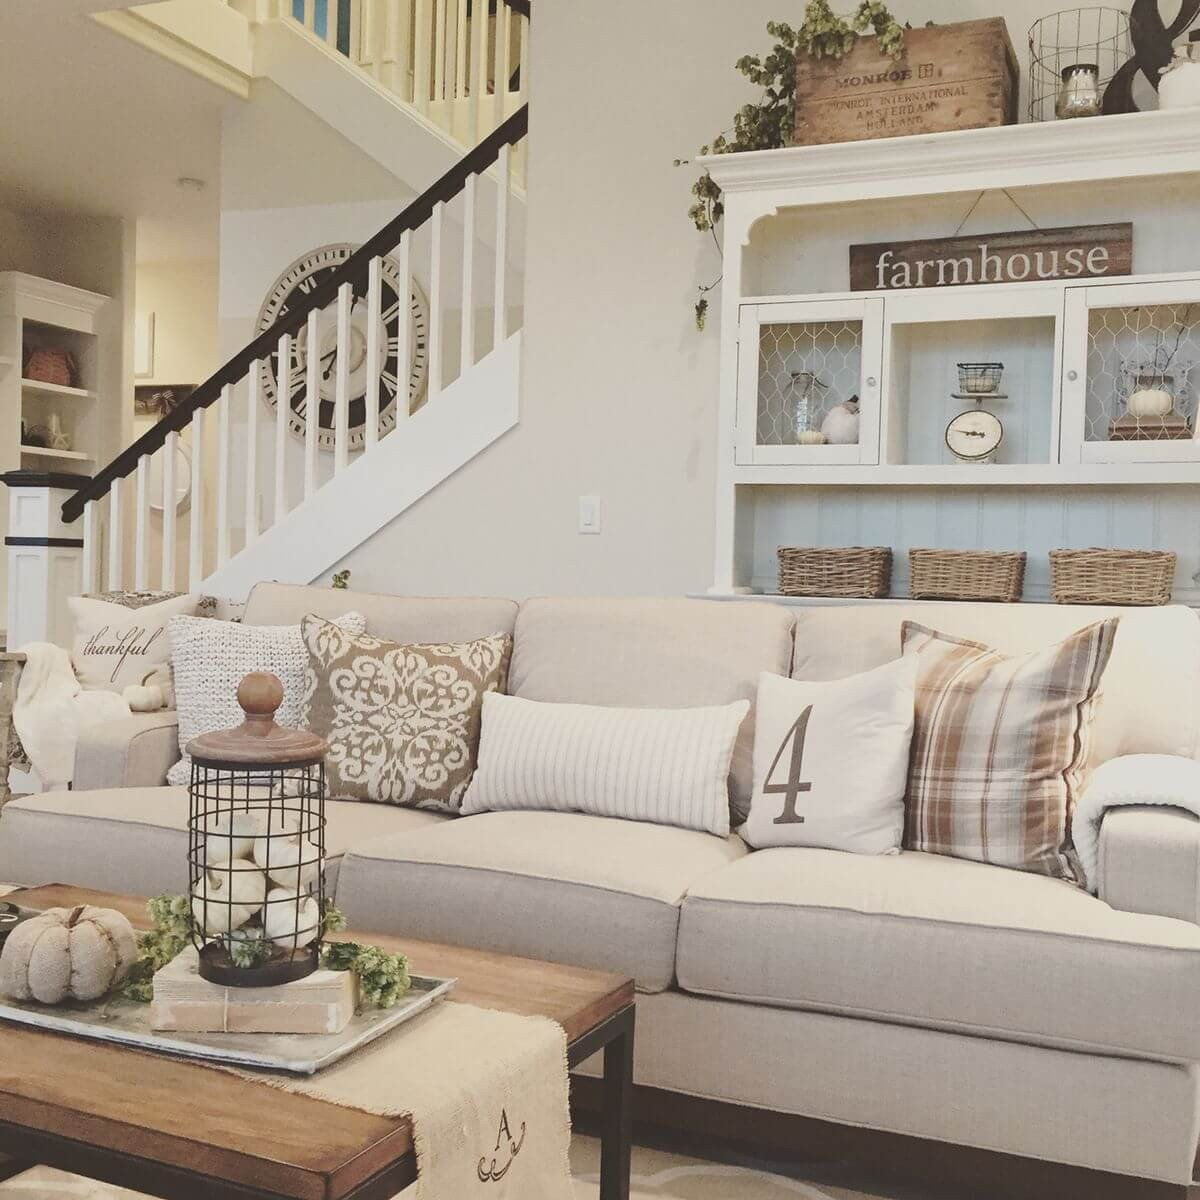 Farmhouse Contemporary Living Room New 35 Best Farmhouse Living Room Decor Ideas and Designs for 2017